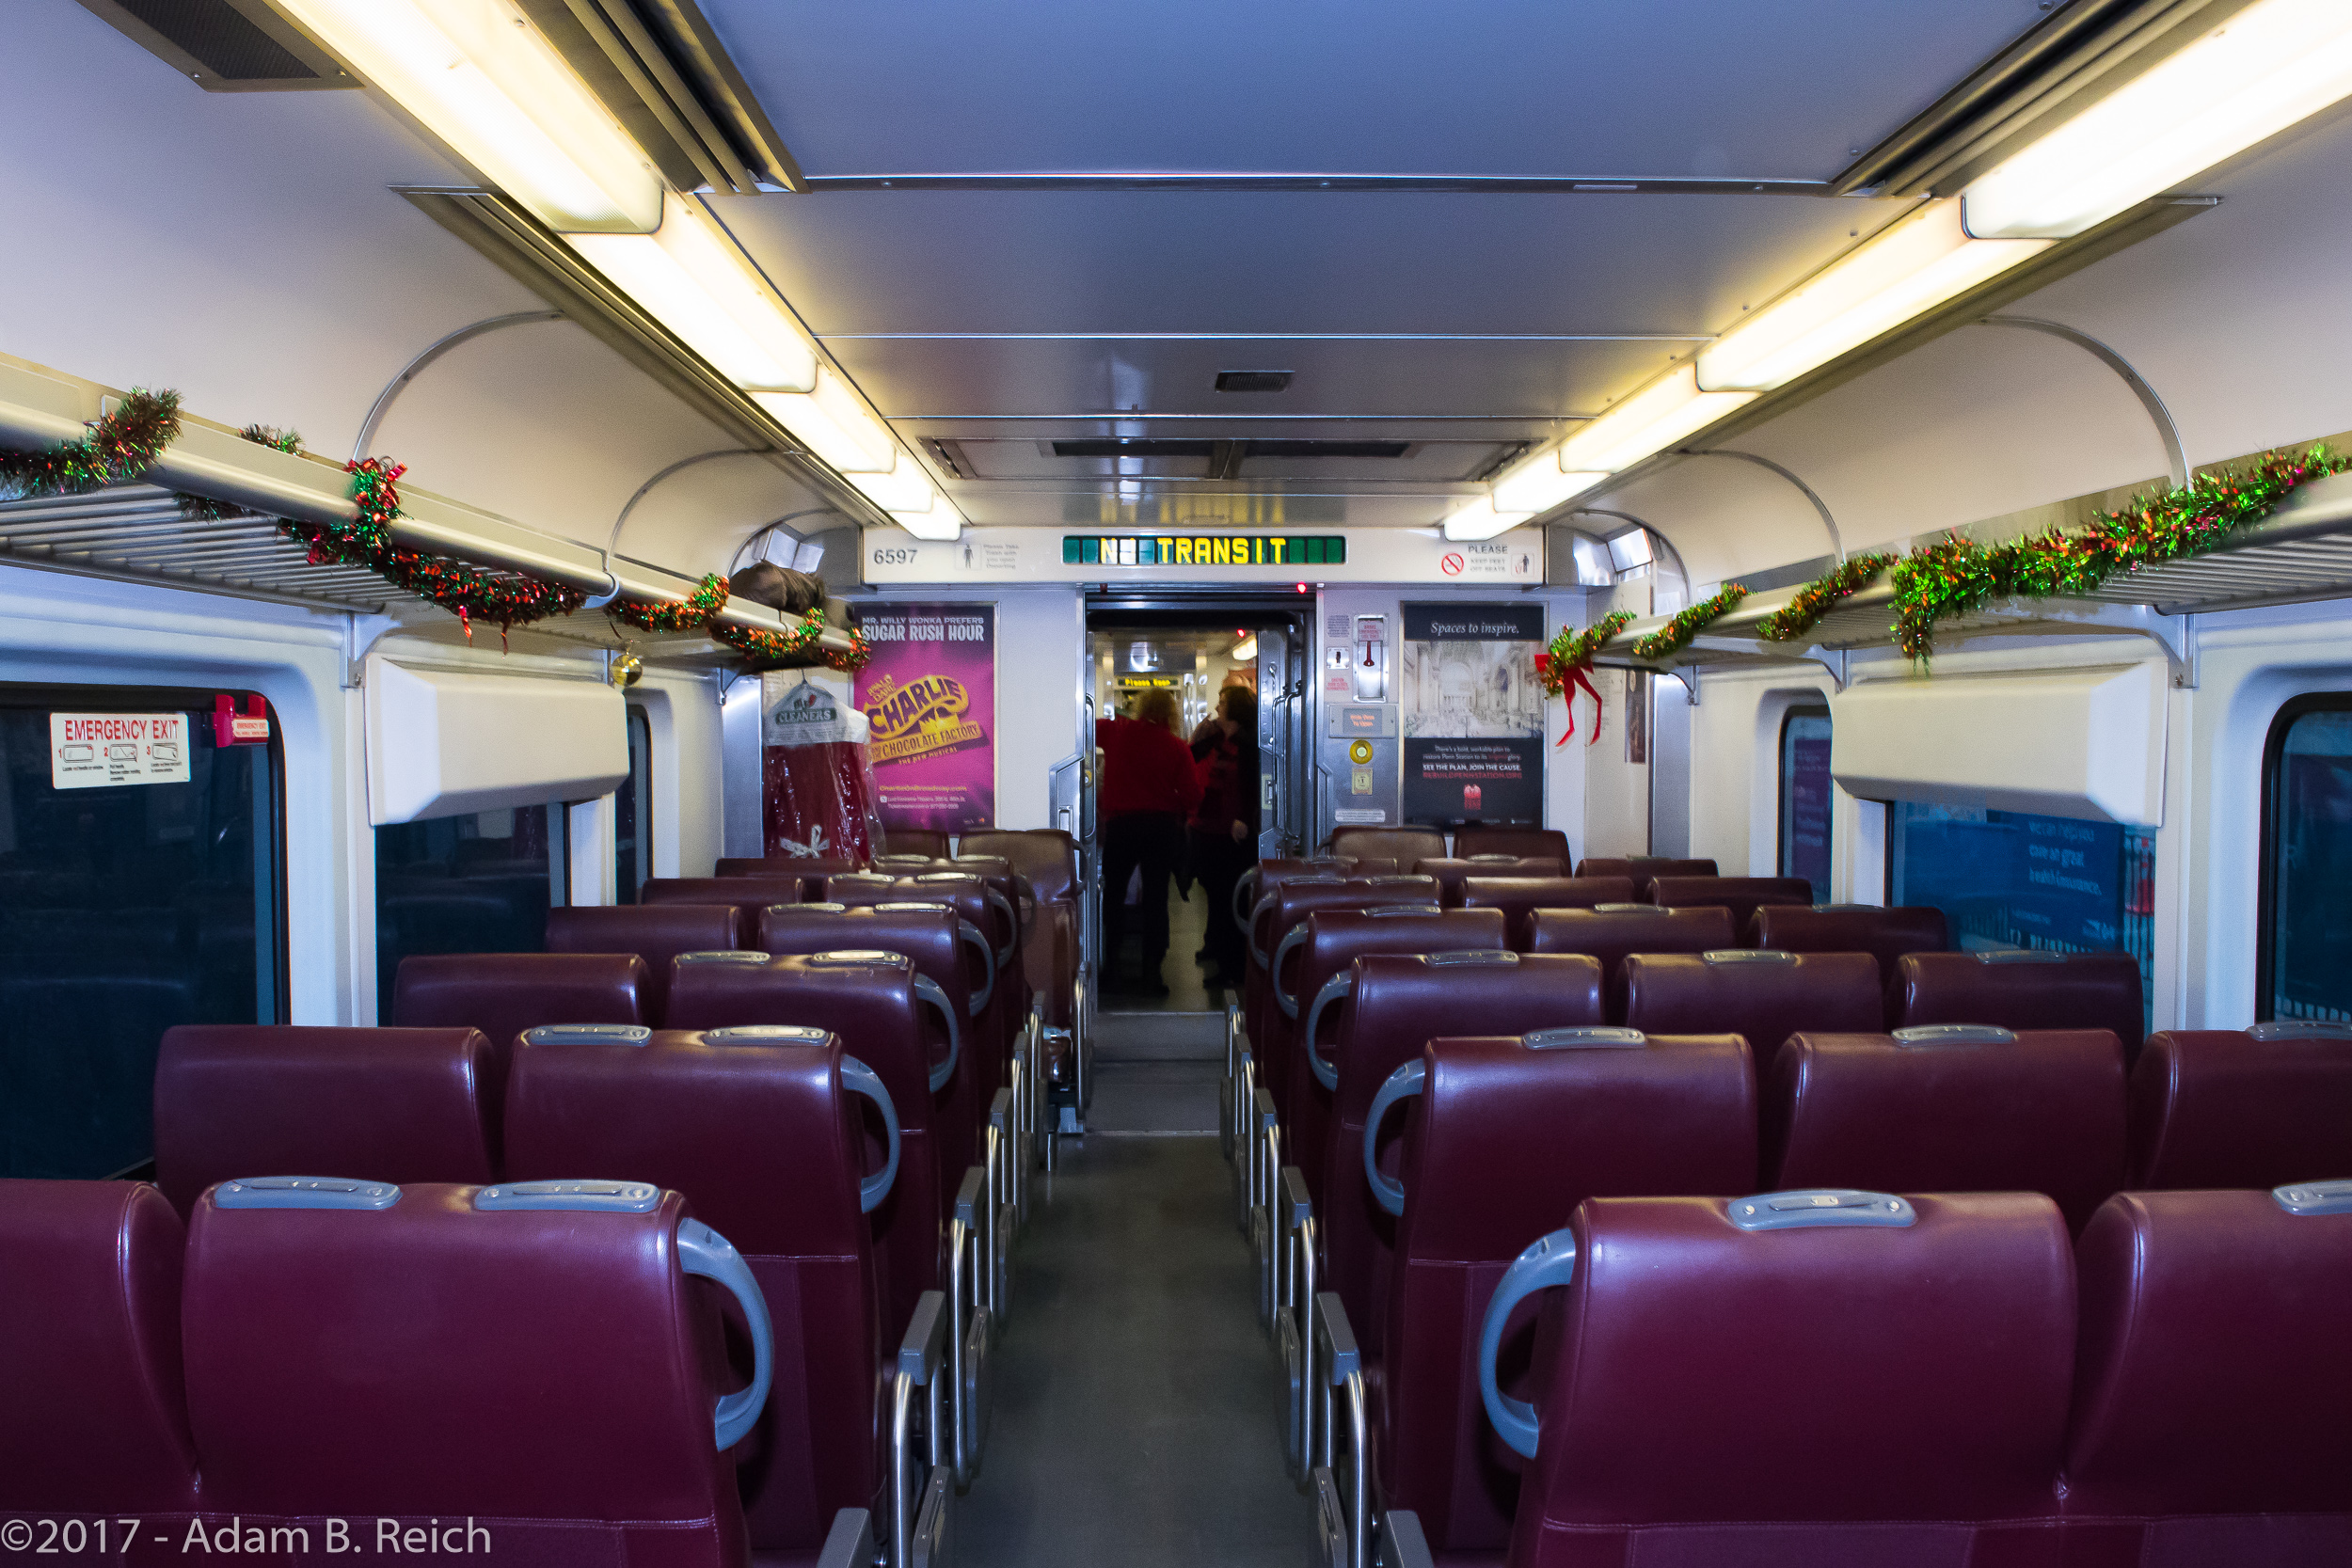 ABOARD ONE OF NJ TRANSIT'S MODERN, RESTROOM EQUIPPED TRAINS